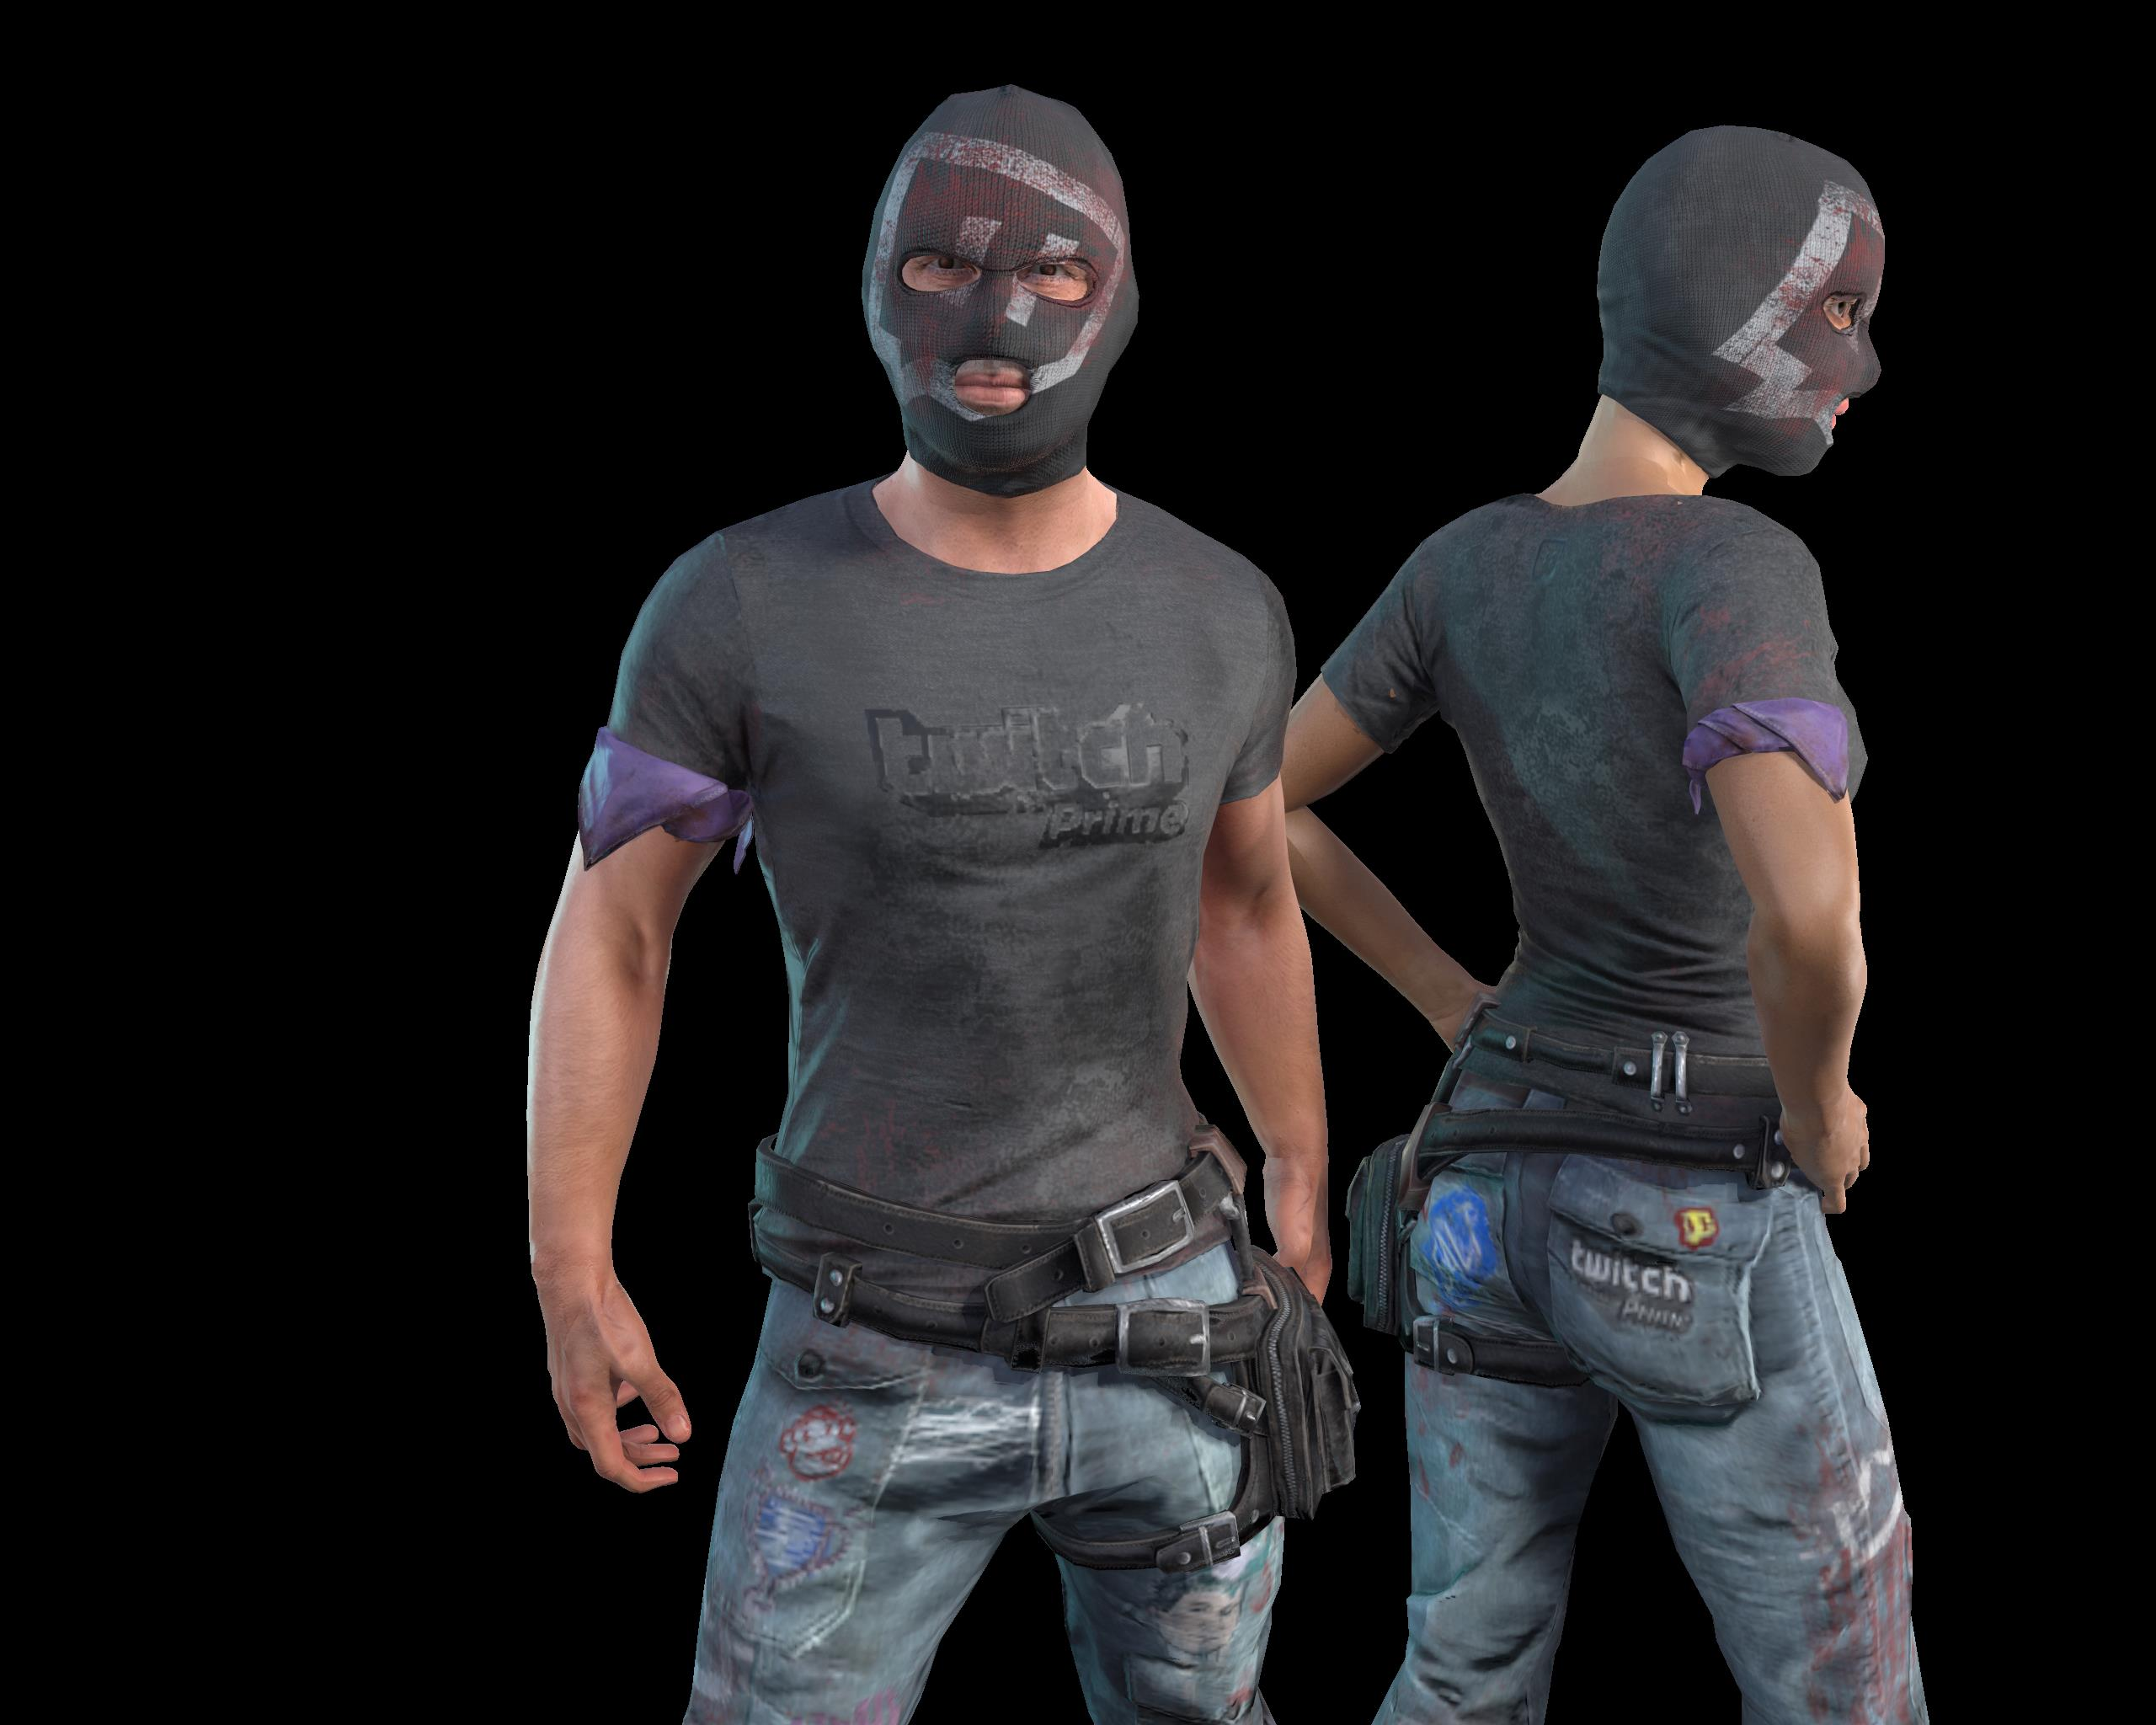 PlayerUnknown's Battlegrounds: take a look at the cool outfits